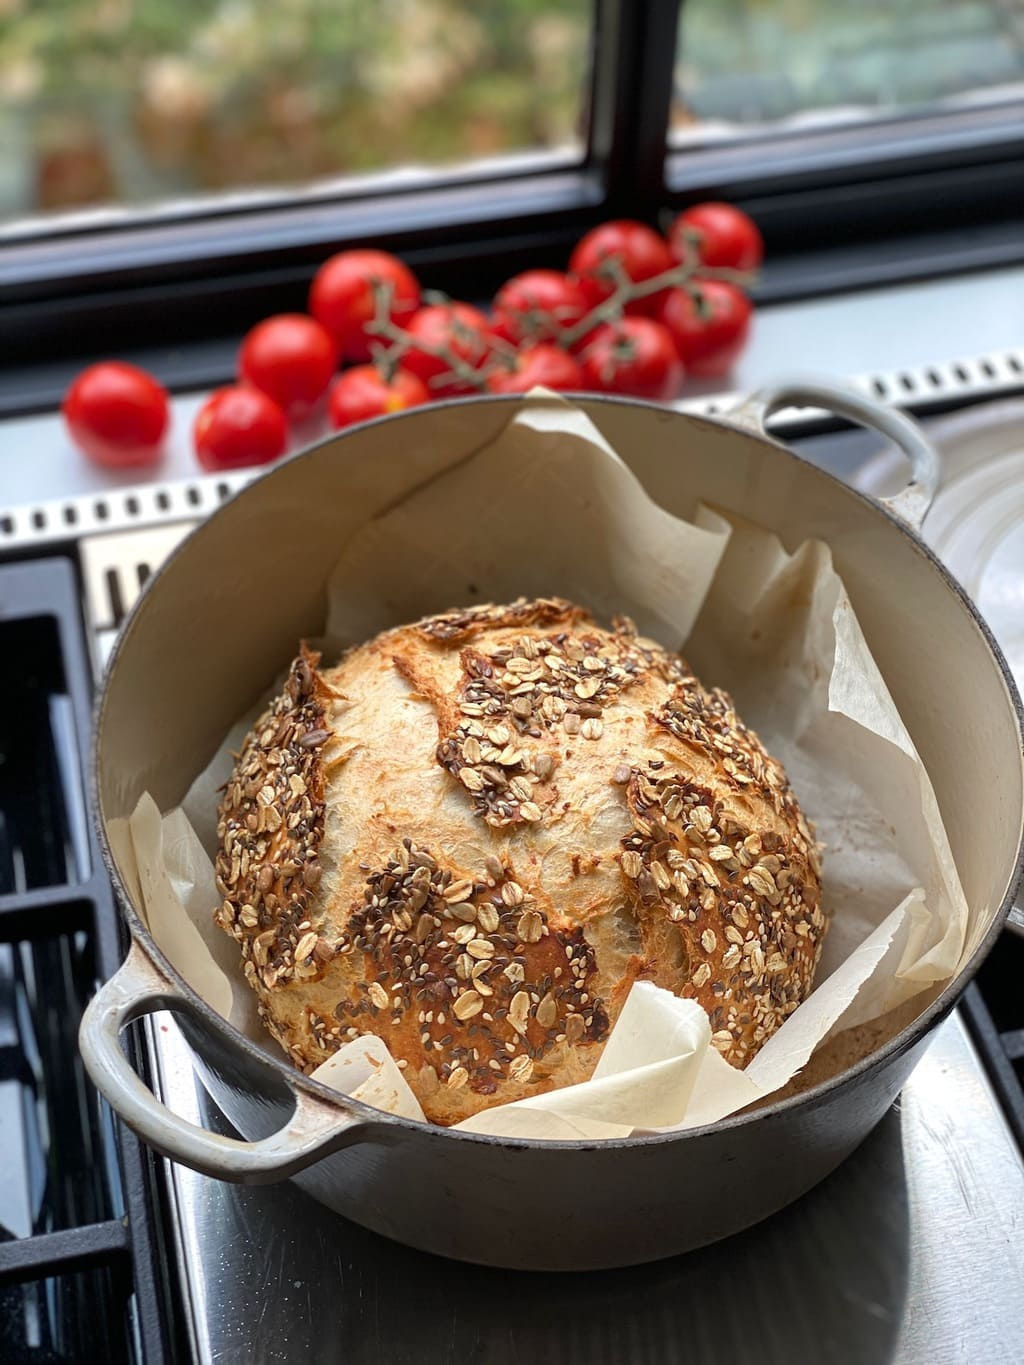 Vertical photo of a loaf of No-Knead Seeded Oatmeal Bread in a baking pot on a stove.